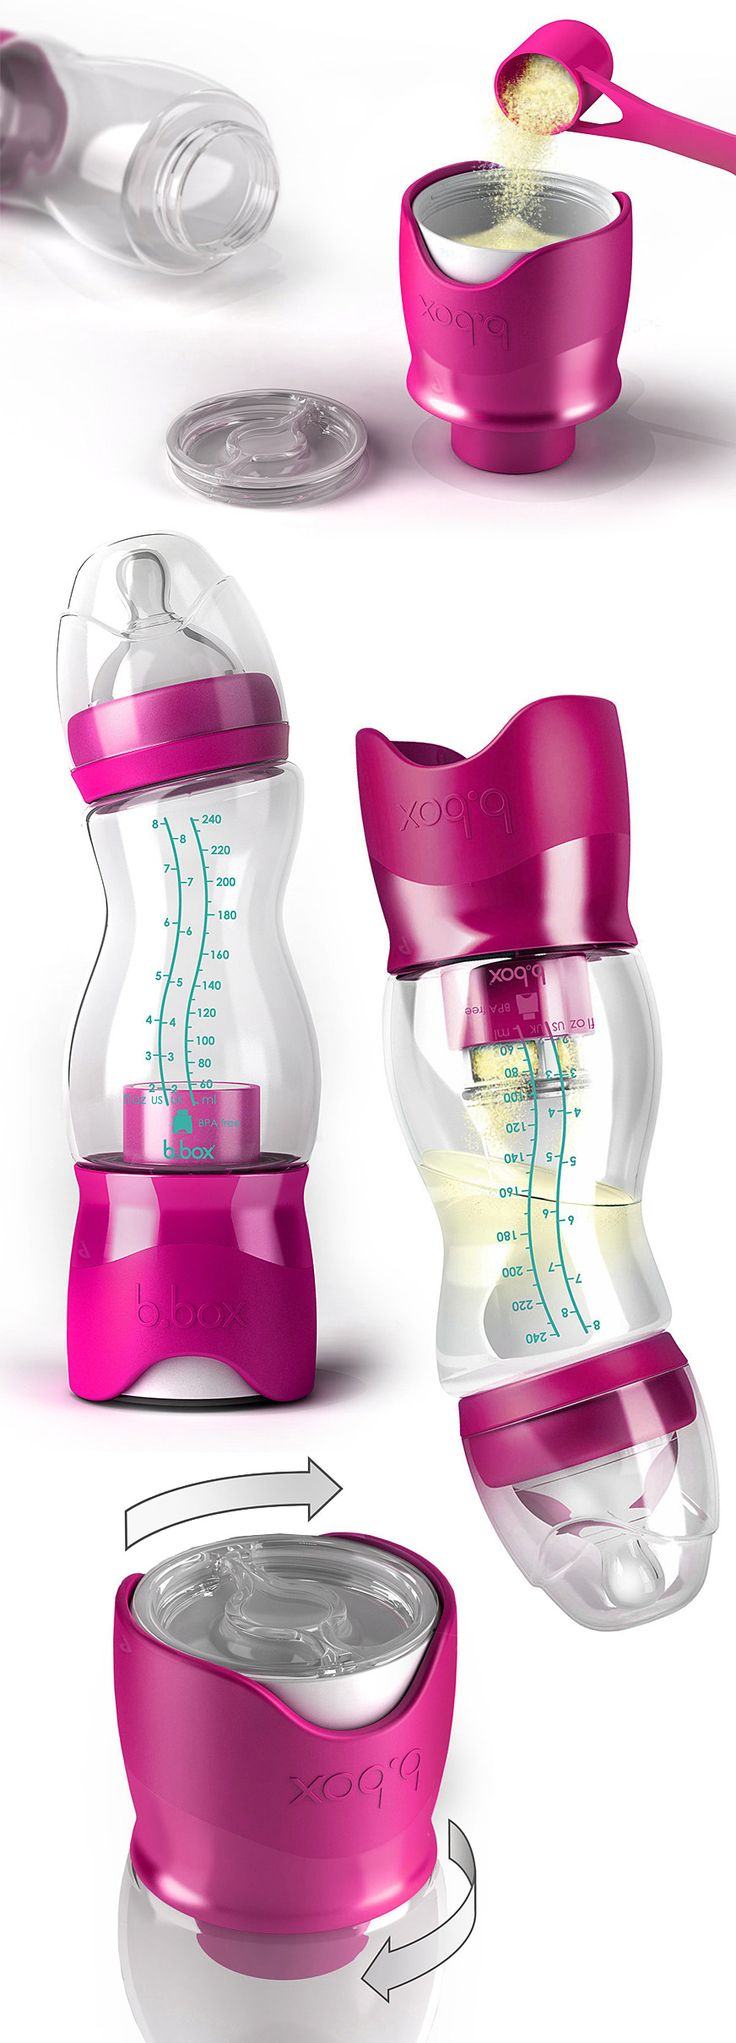 B.Box Baby Bottle - Put the formula in the bottom and water in the top. Simply twist the bottom to release the formula when you're ready to use it! Genius! #product_design